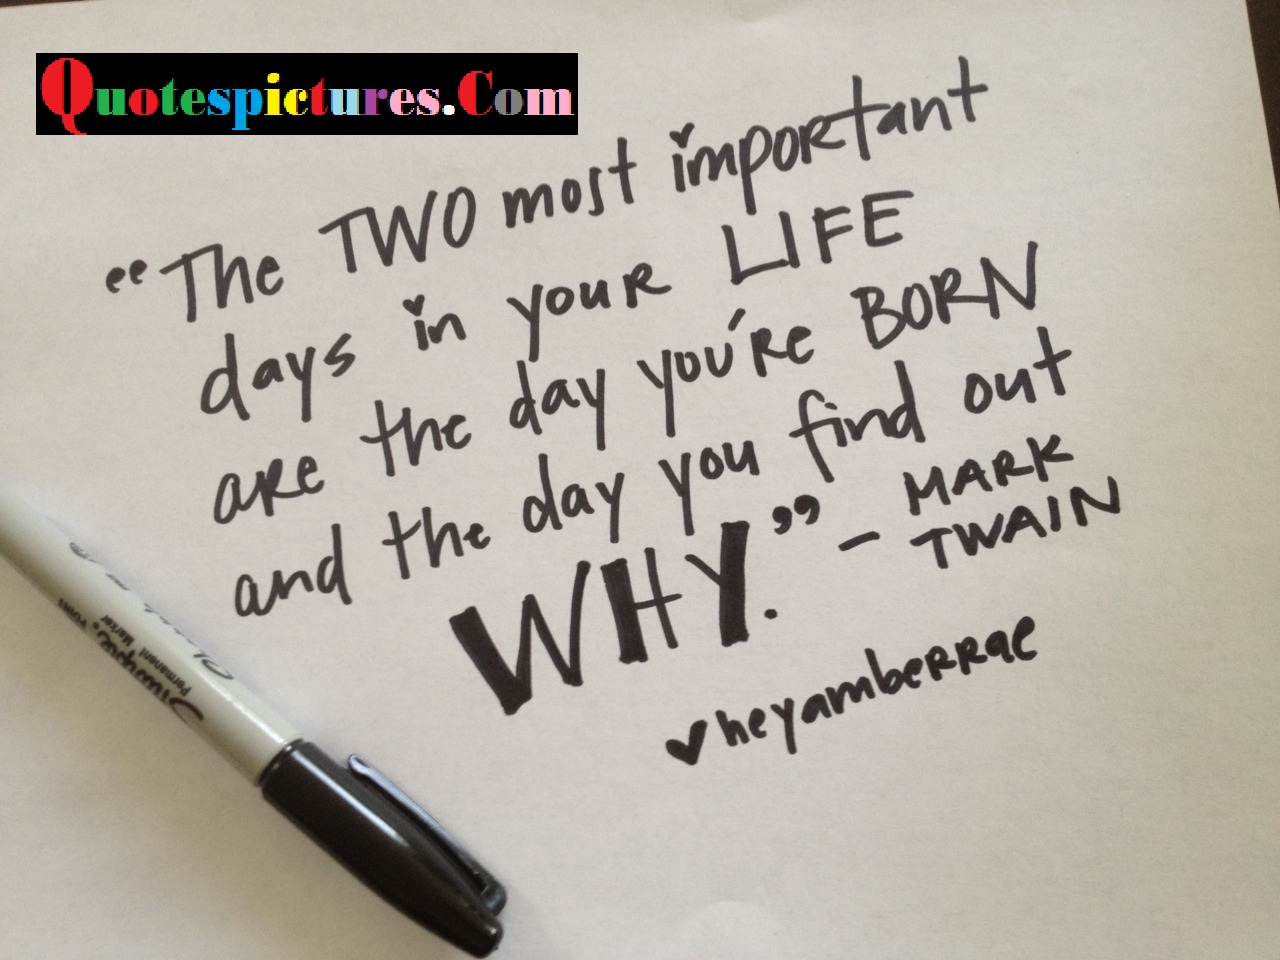 Boldness Quotes - The Two Most Important Days In Your Life By Mark Twain